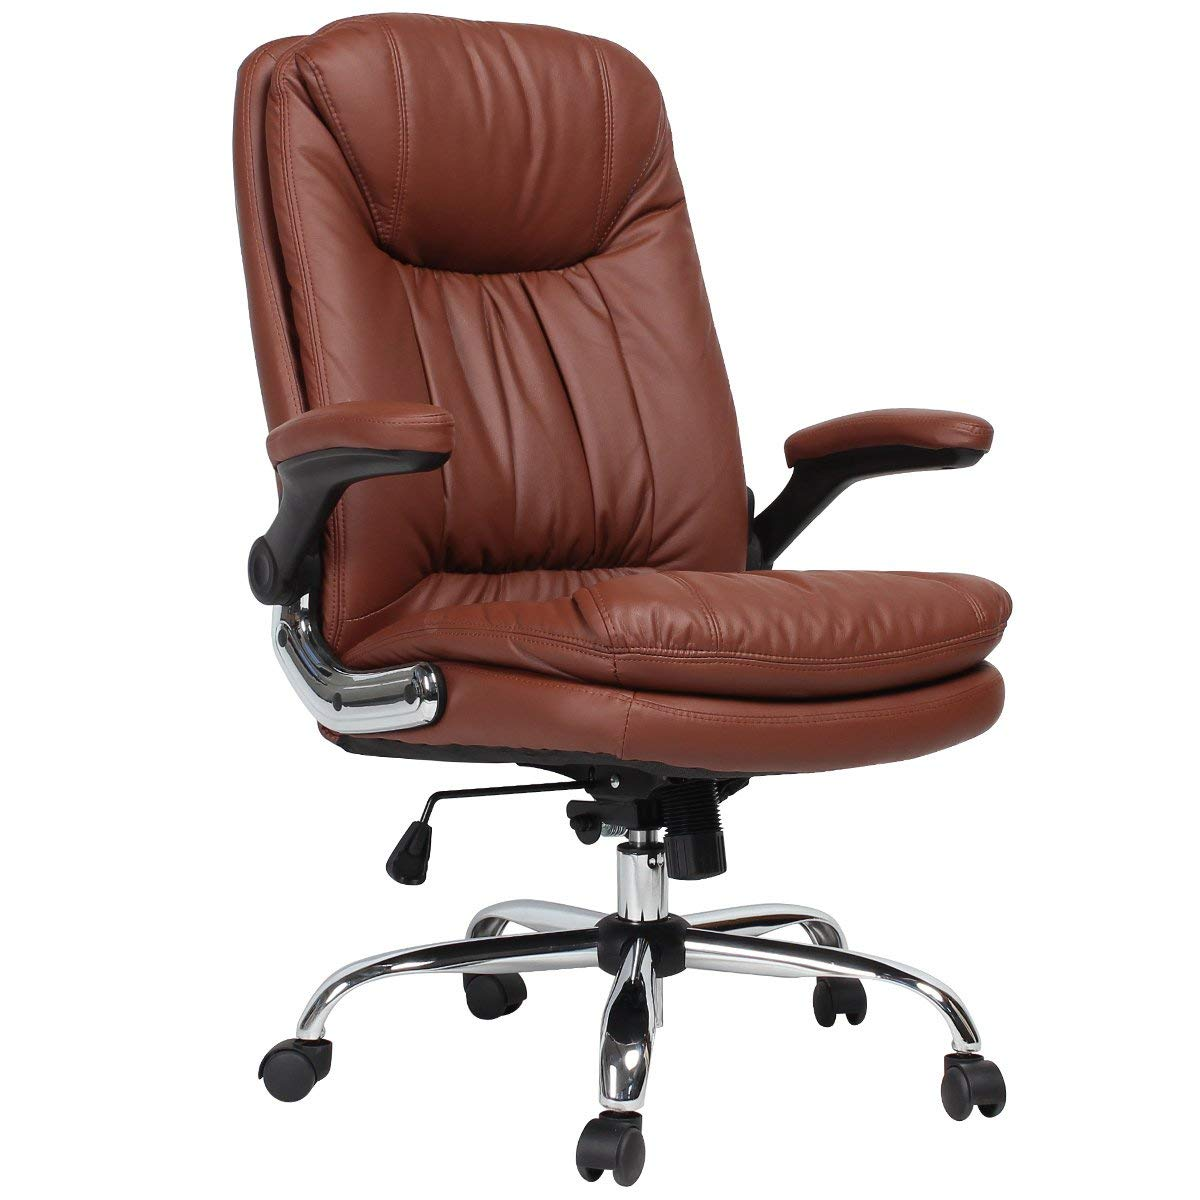 YAMASORO Ergonomic High Back Executive Office Chair